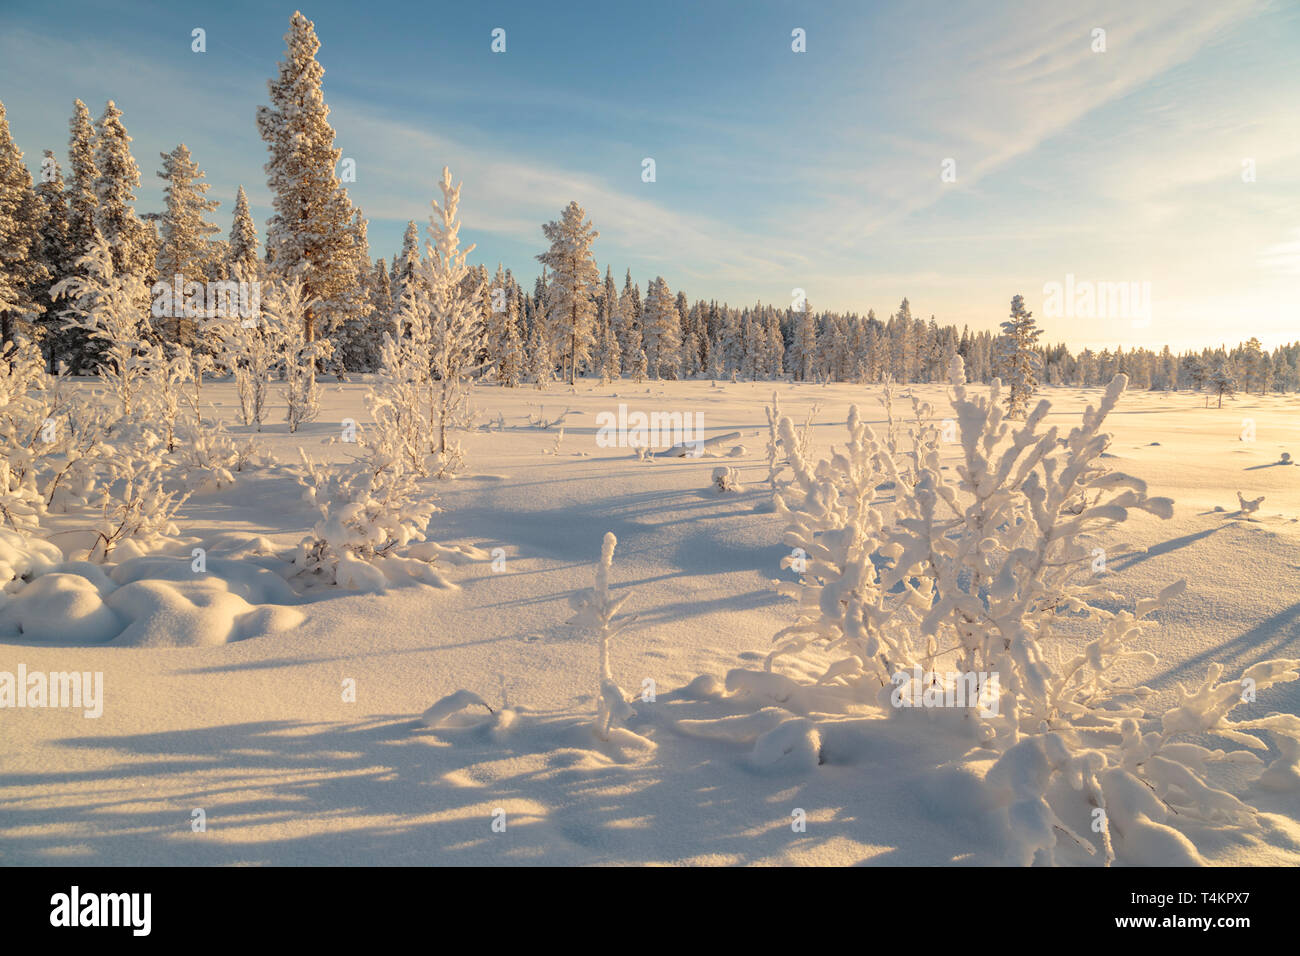 Landscape in winter season, nice warm afternoon light with clear blue sky, Gällivare county, Swedish Lapland, Sweden - Stock Image